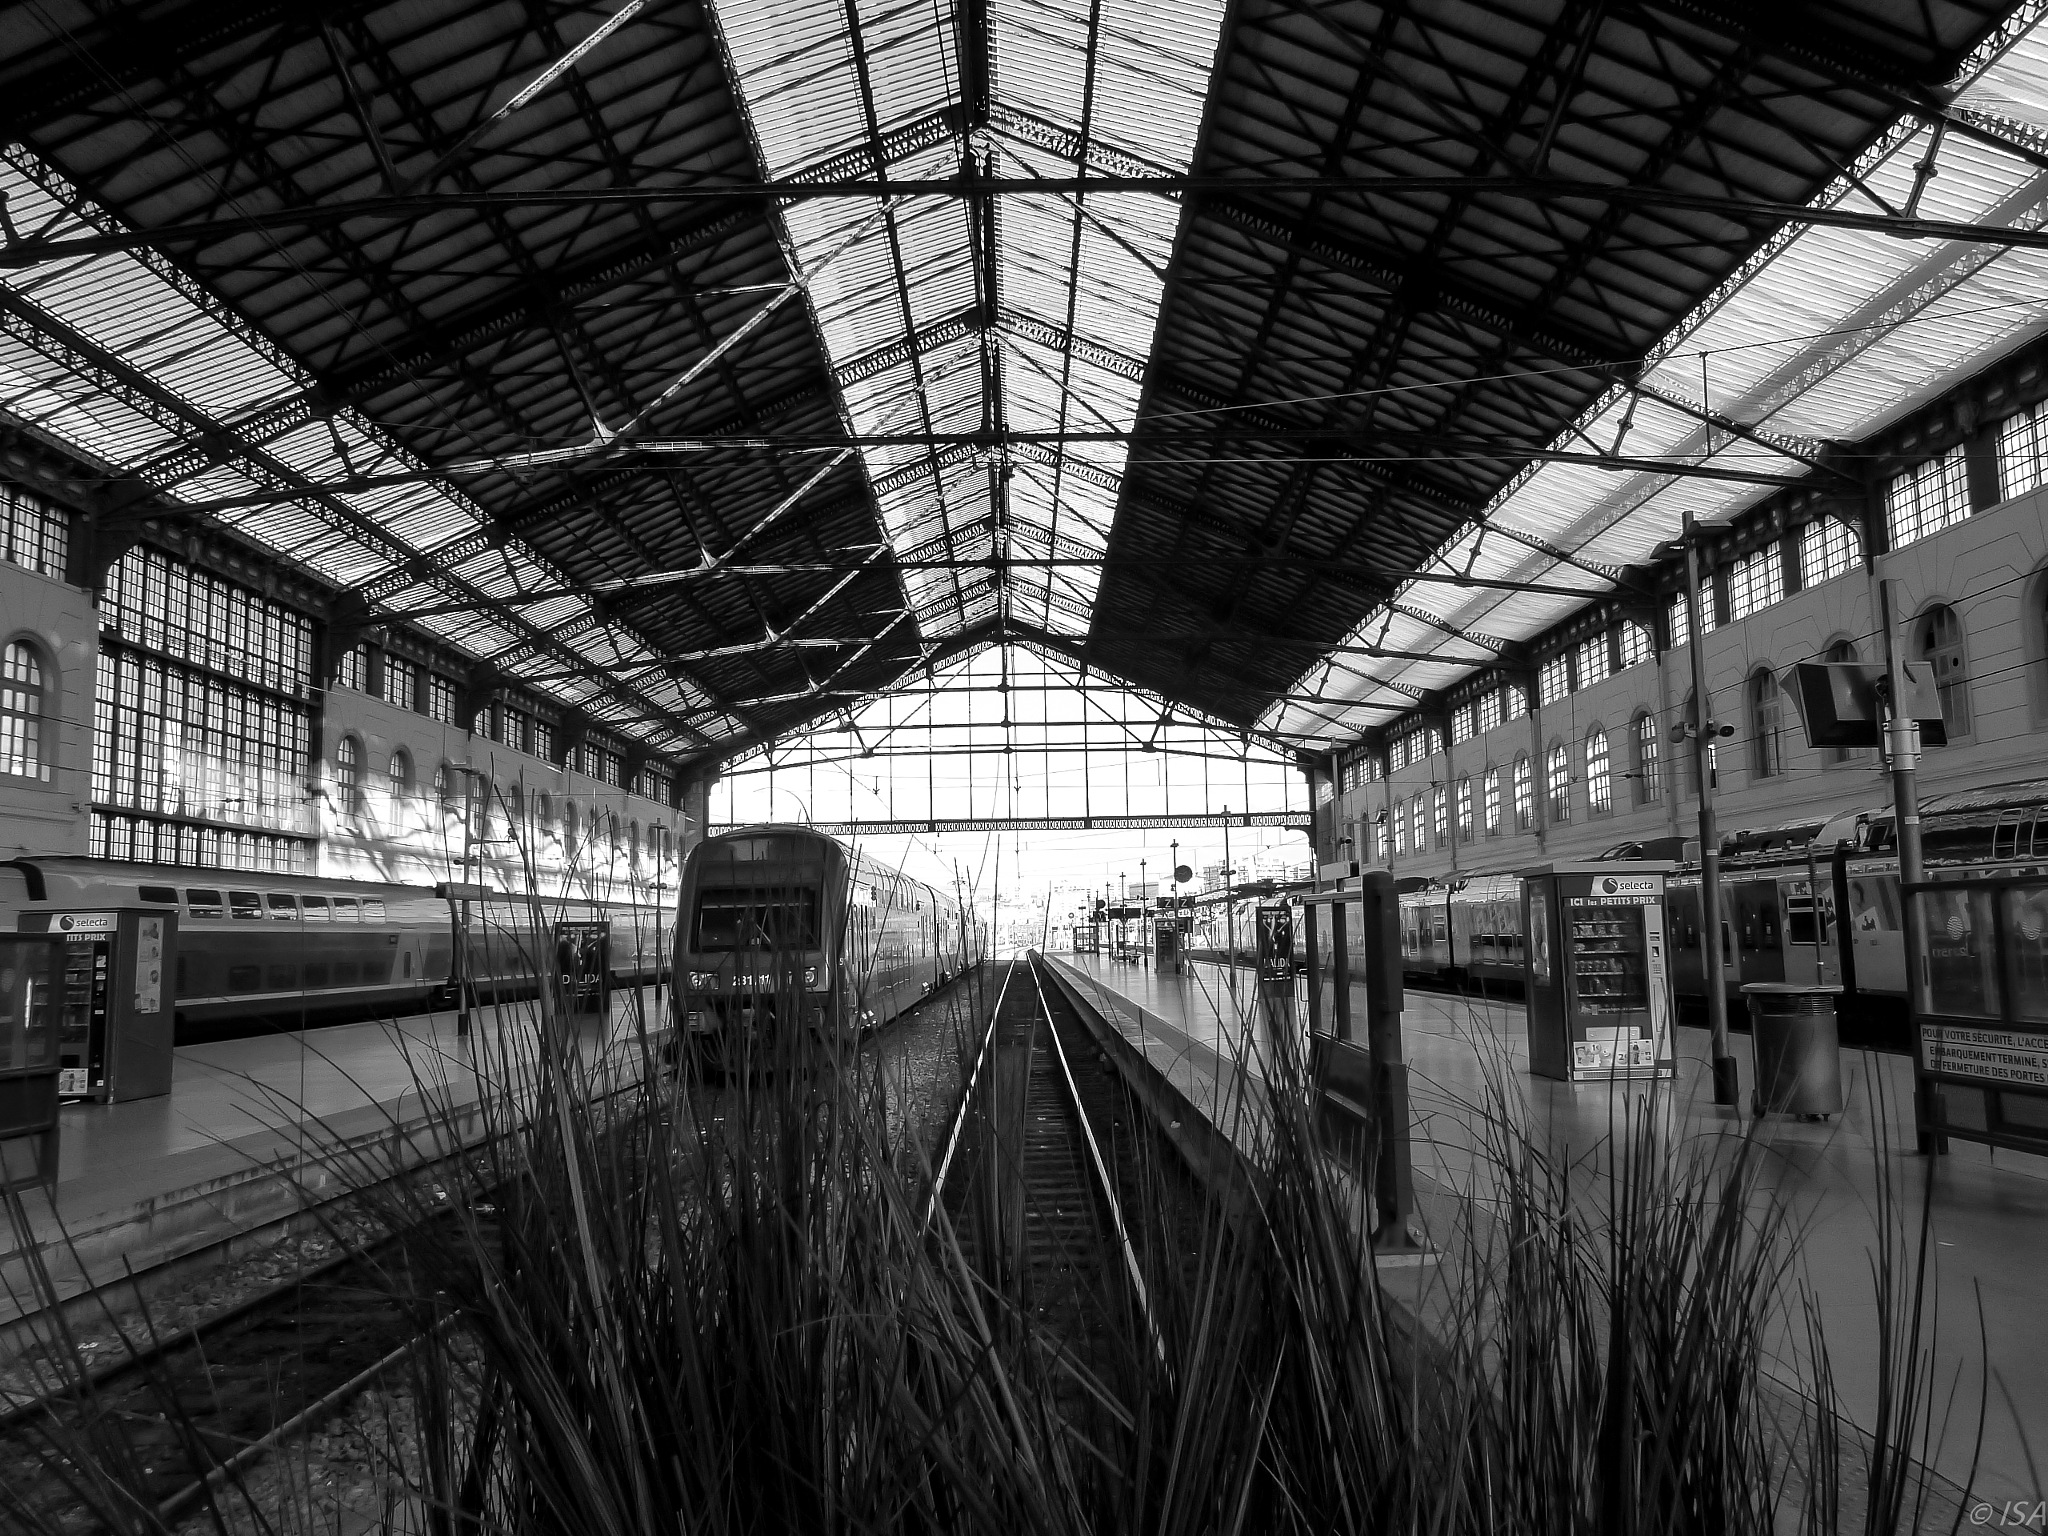 Gare St Charles - Marseille by Aymée Lyrhe